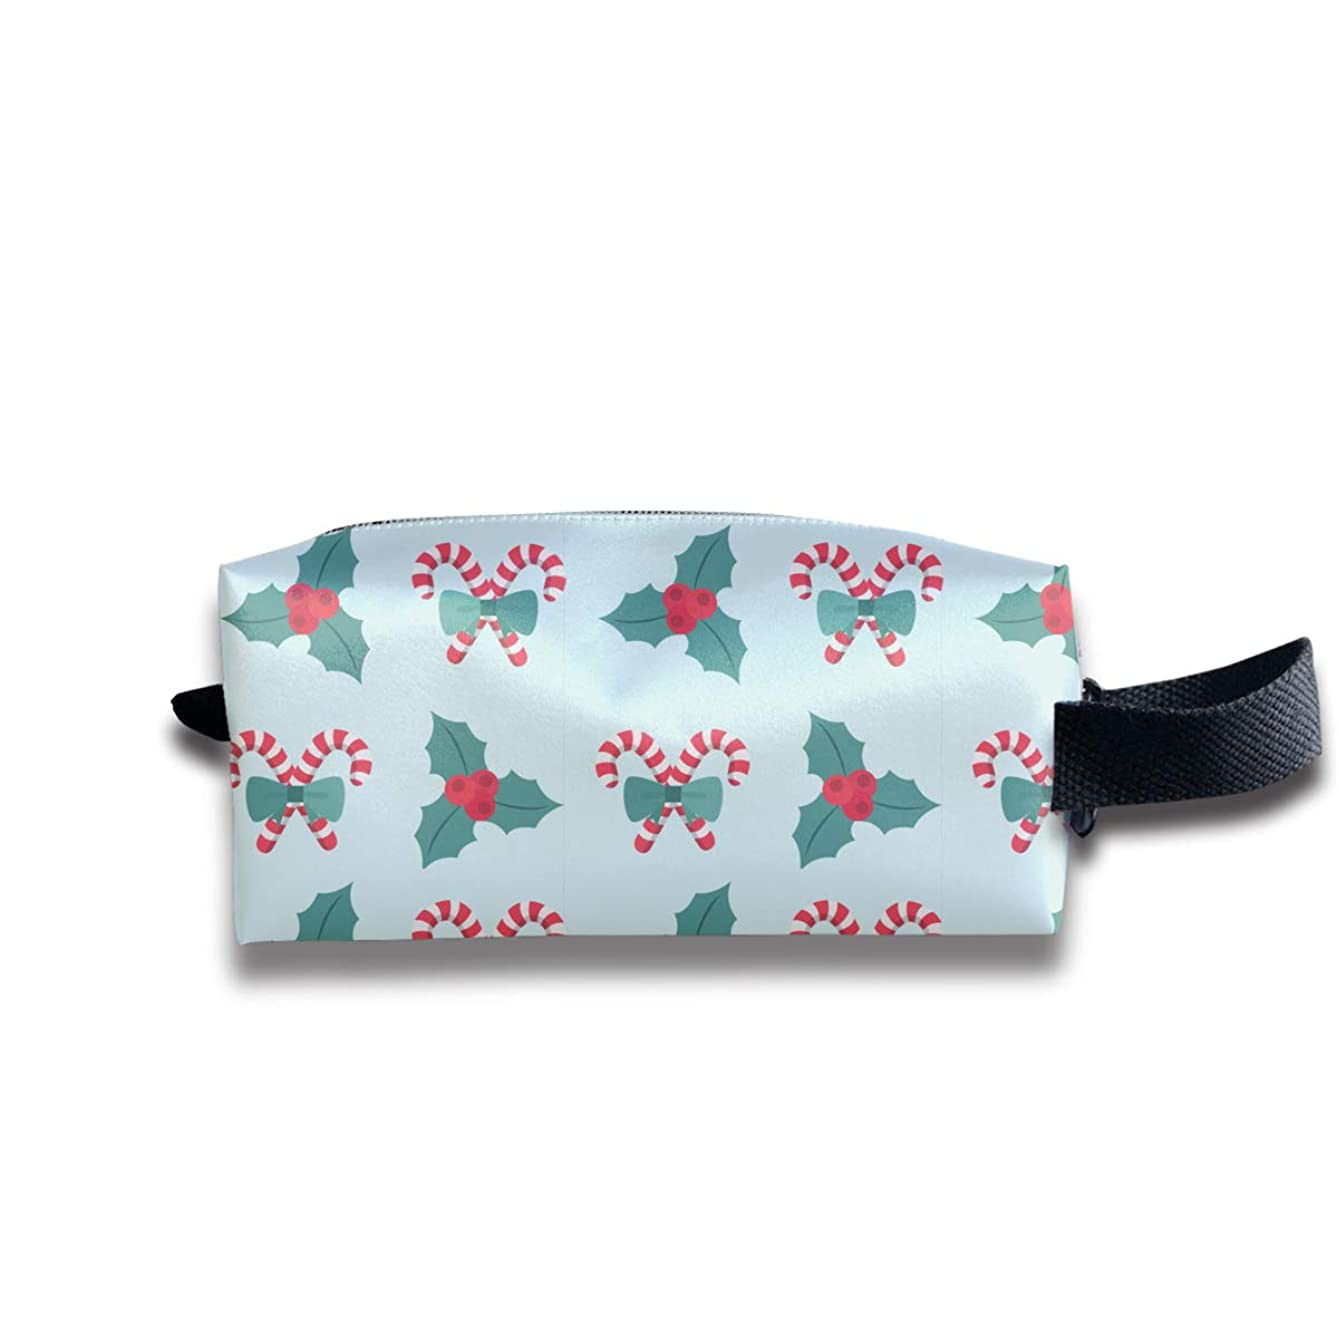 SHdYtrt Merry Christmas Toiletry Bag Multifunction Portable Wash Bag Cosmetic Organizer Pouch